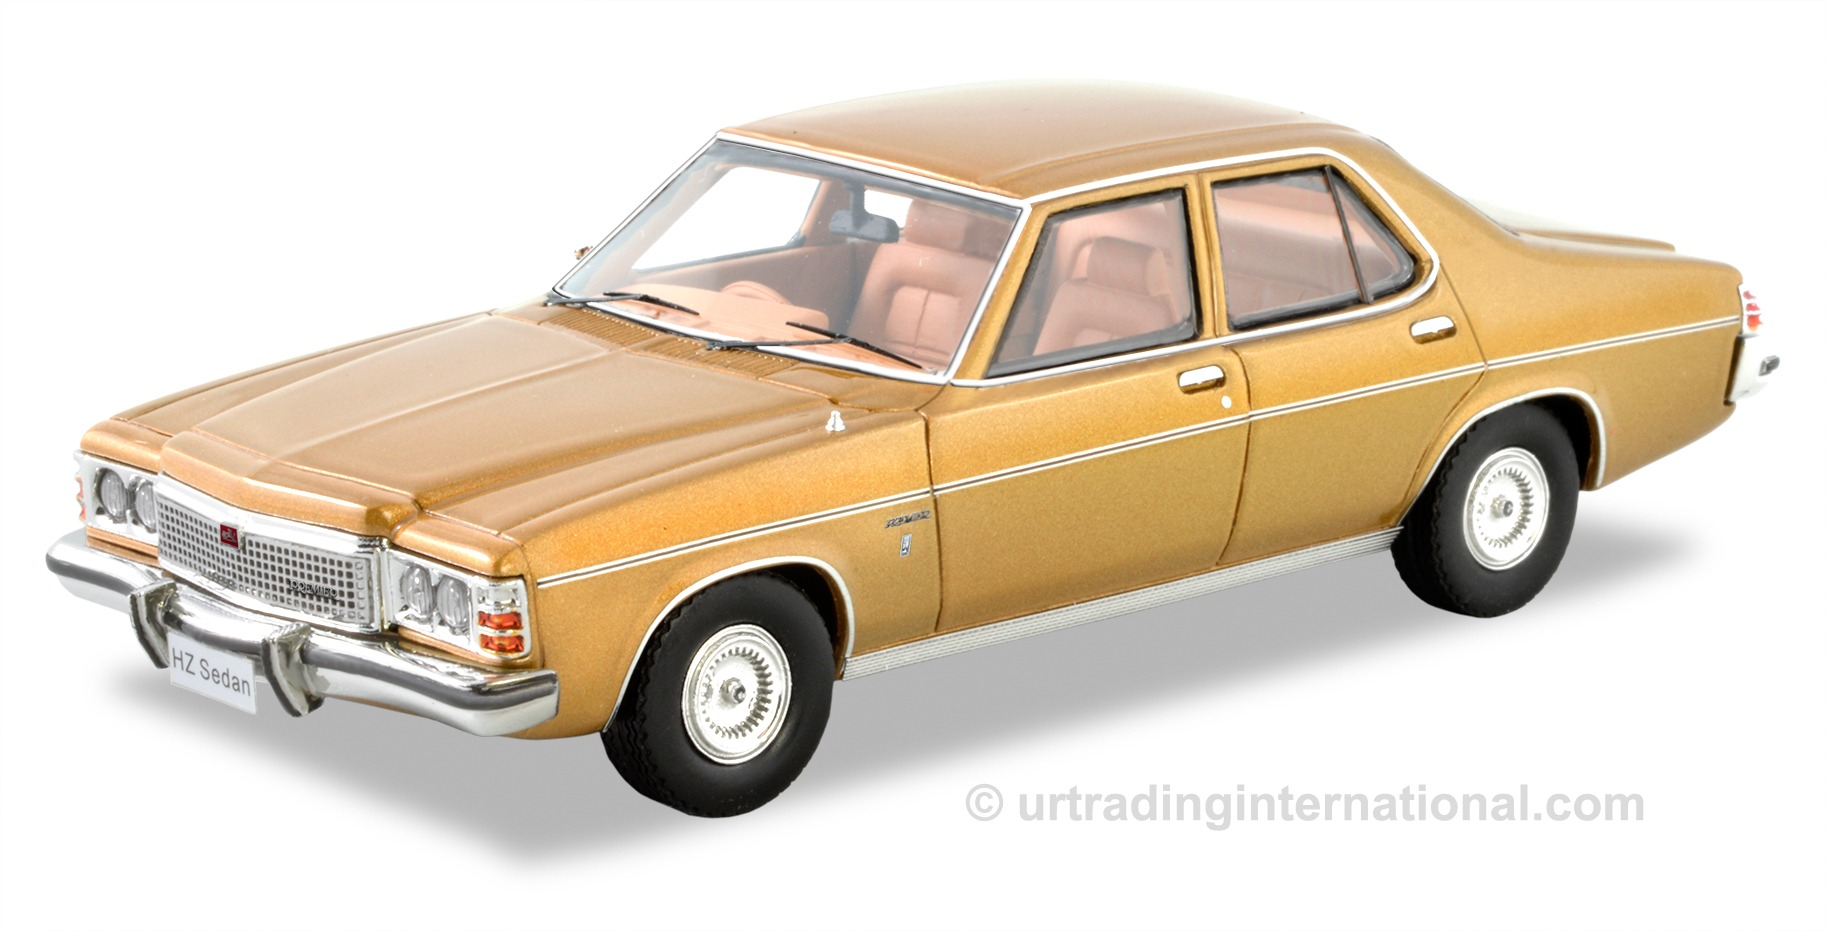 1977 Holden HZ Premier Sedan – Dynasty Gold